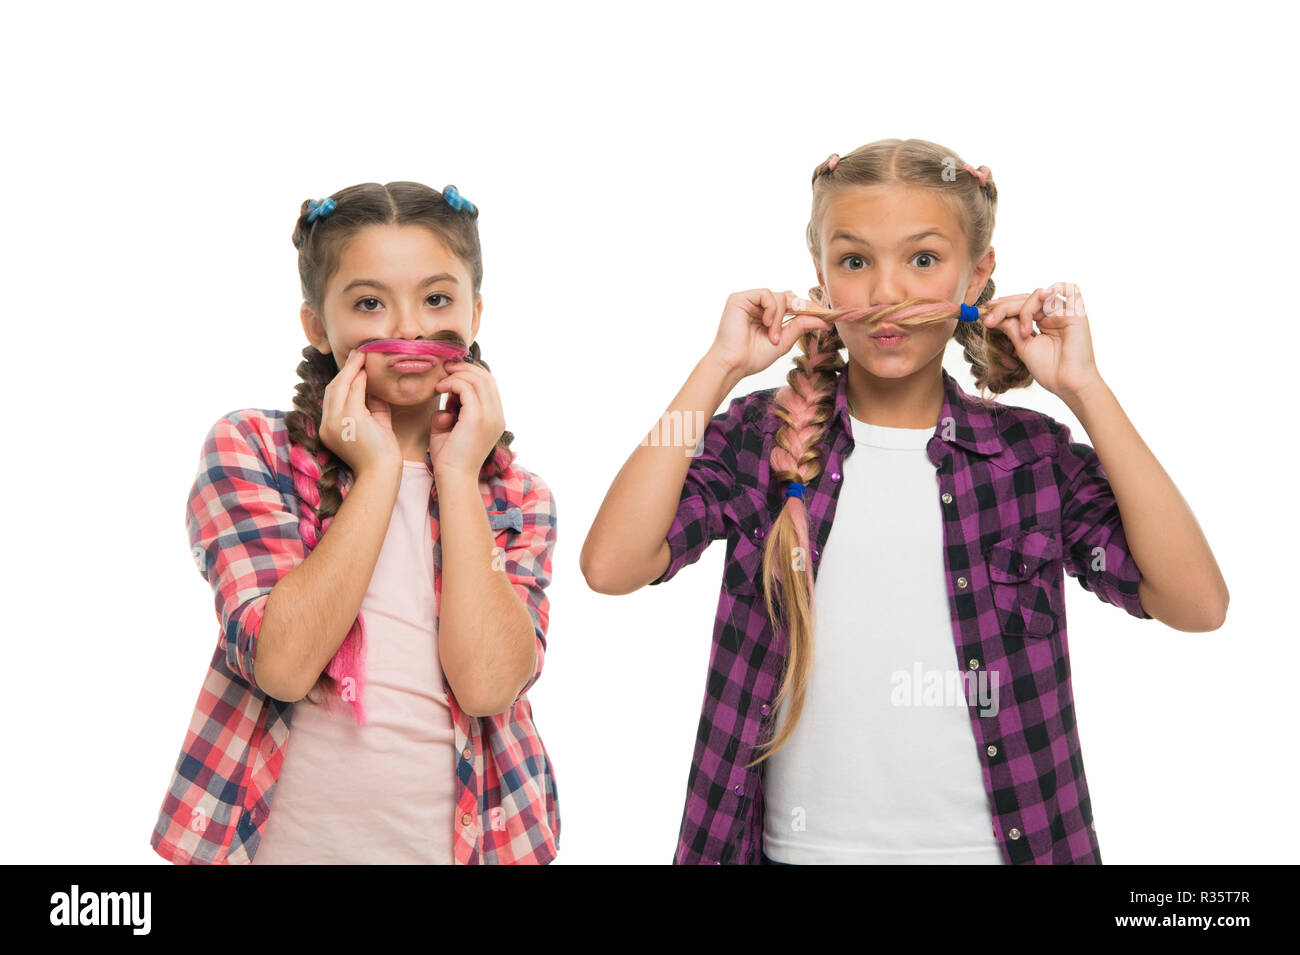 Girls friends wear similar outfits have same hairstyle braids white background. Sisters family look. Kanekalon jumbo braids hairstyle. Long hair hairstyle. Keep hairstyle braided for healthier hair. - Stock Image